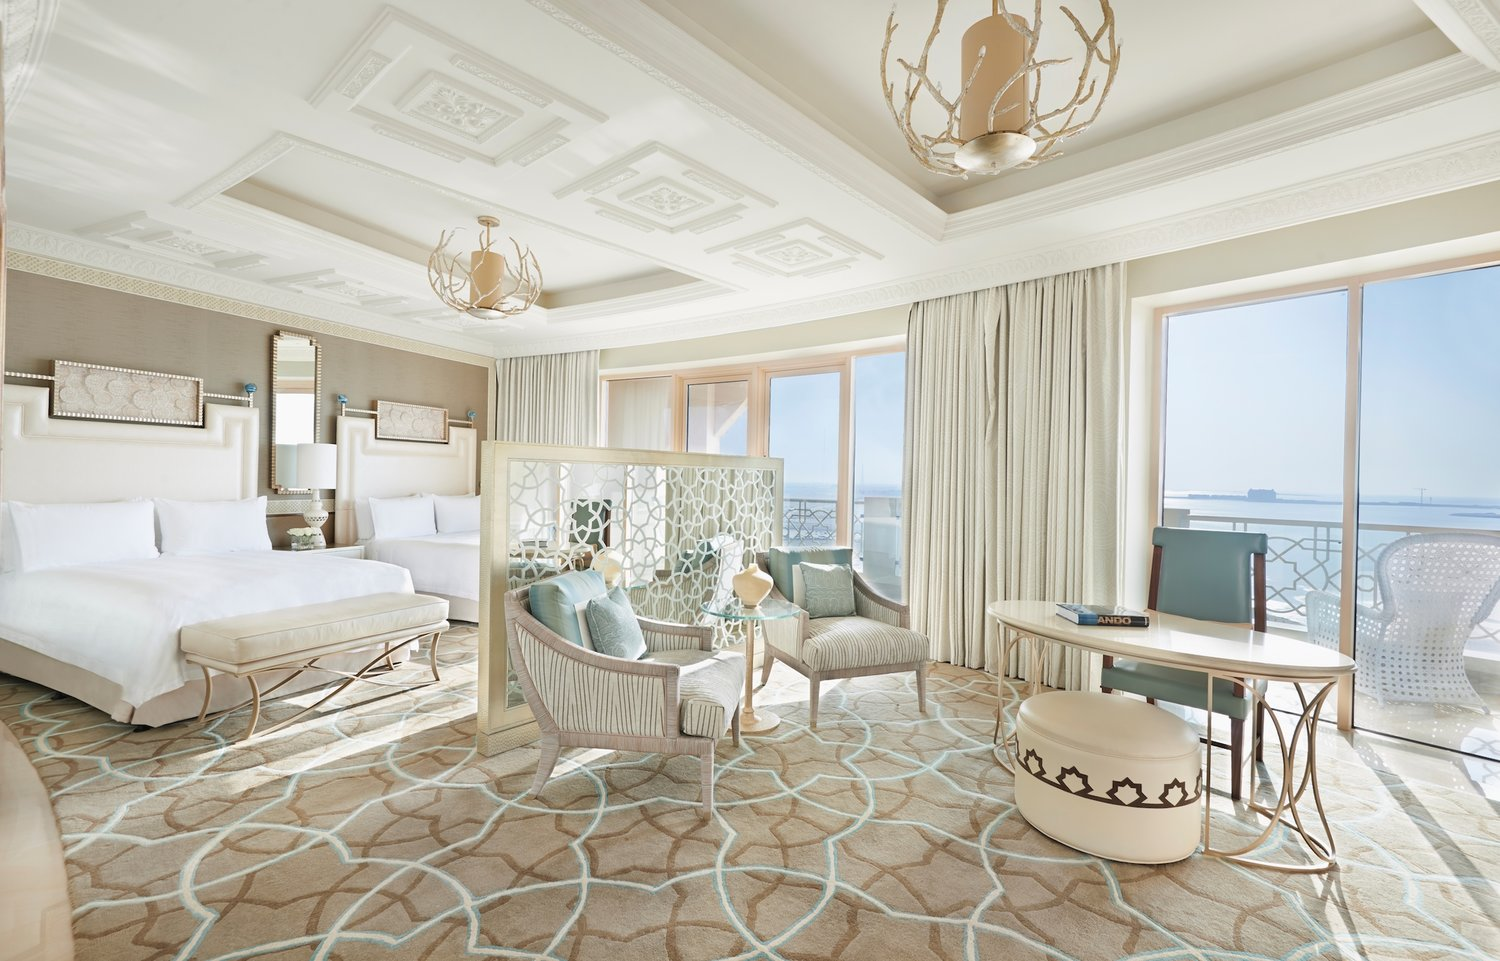 Waldorf Astoria Ras Al Khaimah Deluxe Room Queen With Balcony And Seaview Copy